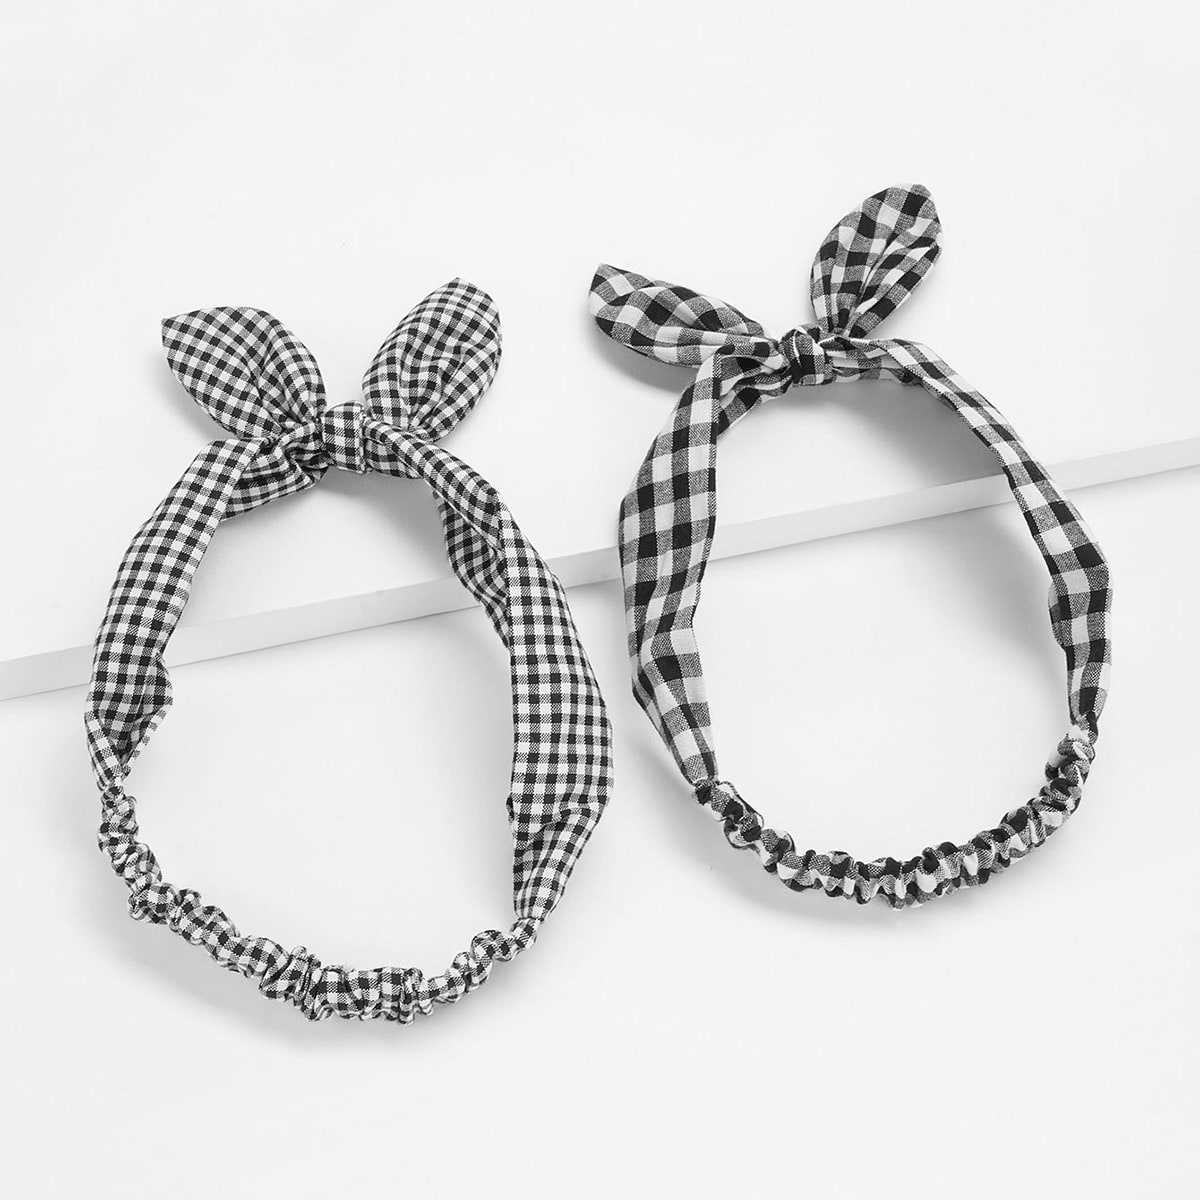 Knotted Bow Plaid Headband 2pcs in Black and White by ROMWE on GOOFASH